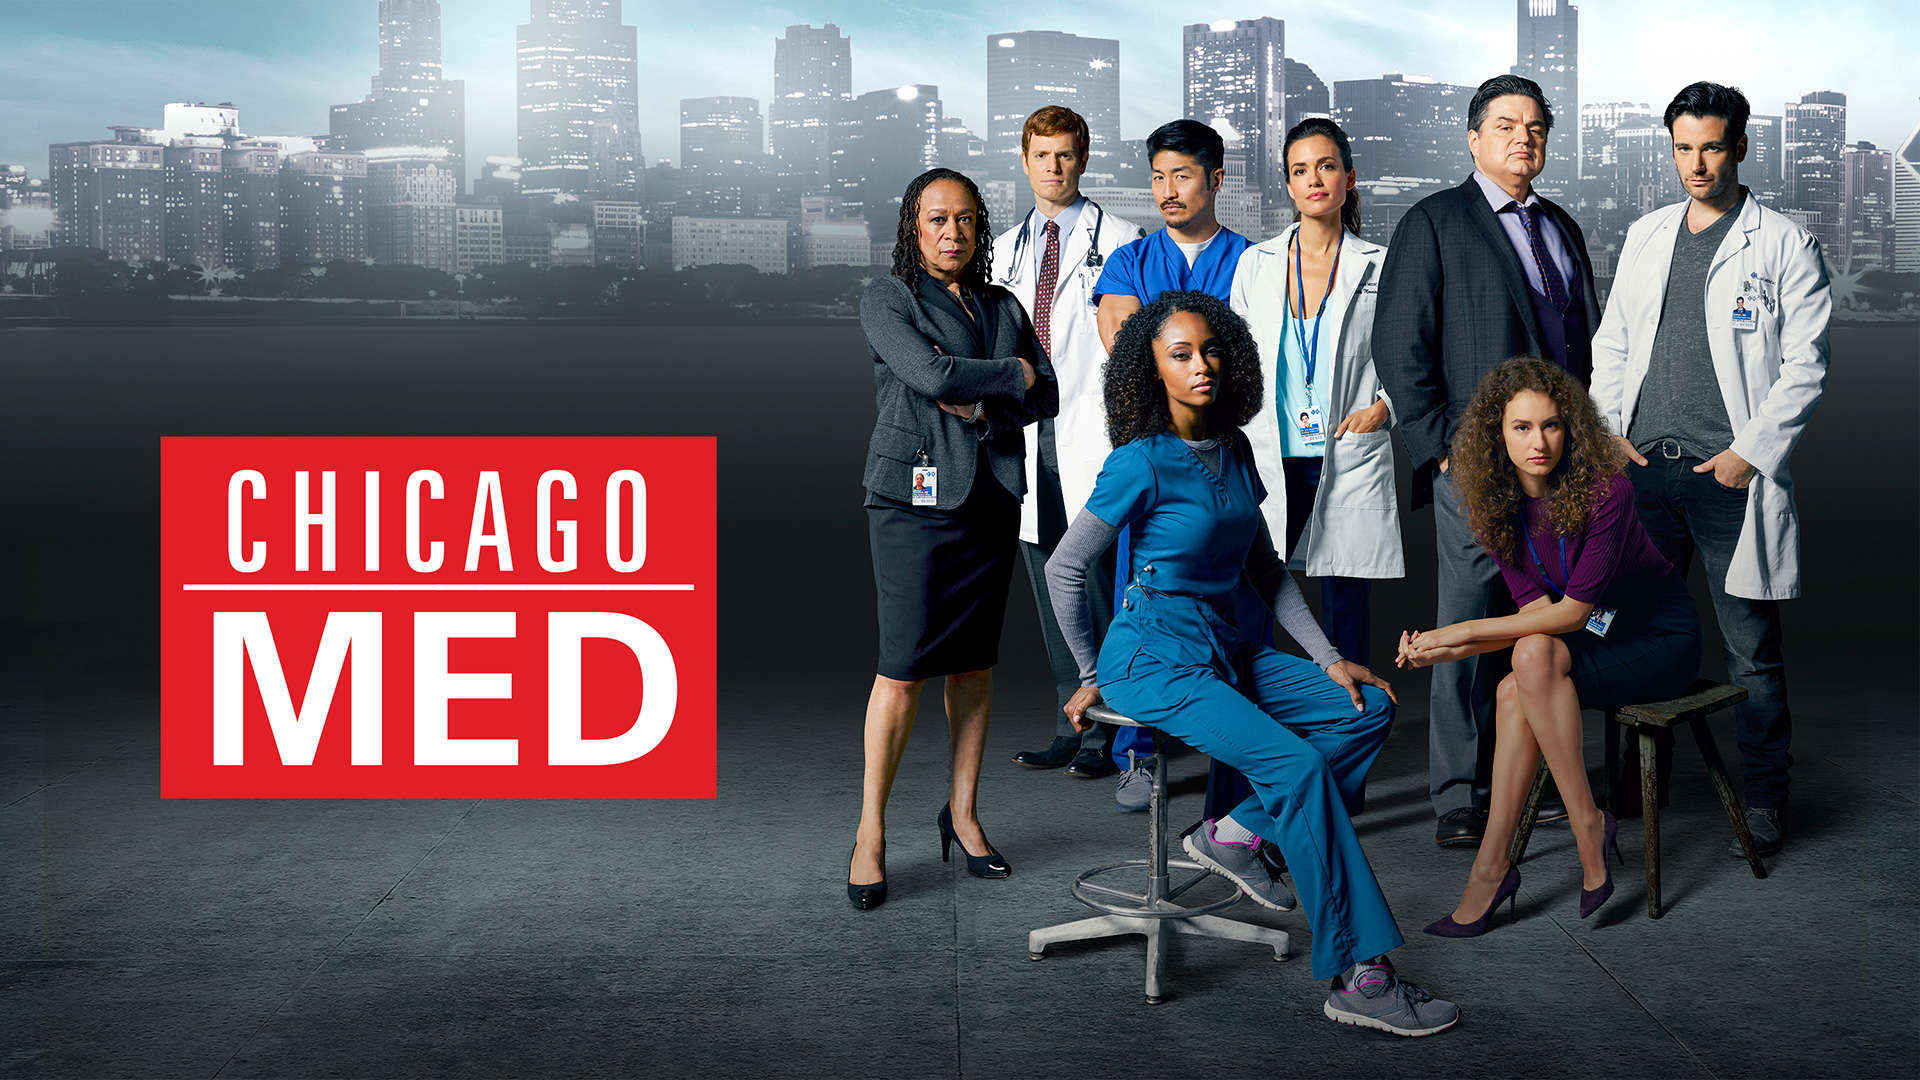 2 chicago med hd wallpapers background images